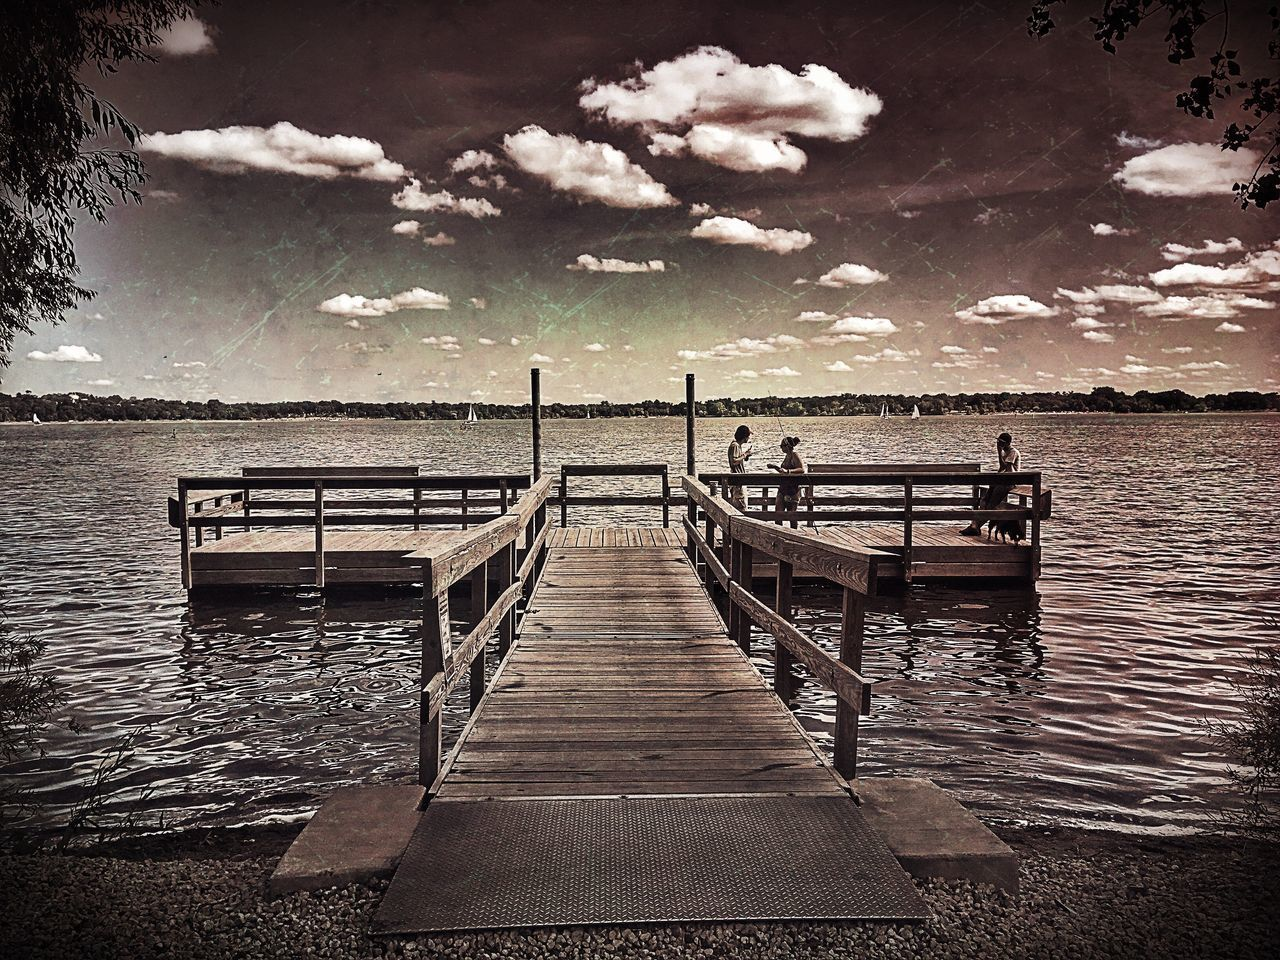 Fishing. Outdoors Fishing Fisherman Pier Fishing Pier Summer Summertime Summer Views Lake Lake View Lakeshore Lakeside Lakes  Lakeview Lake Life Minnesota Minneapolis Family Outdoor Activity Outdoor Activities Relaxing Fun Togetherness Family Time Family Activity